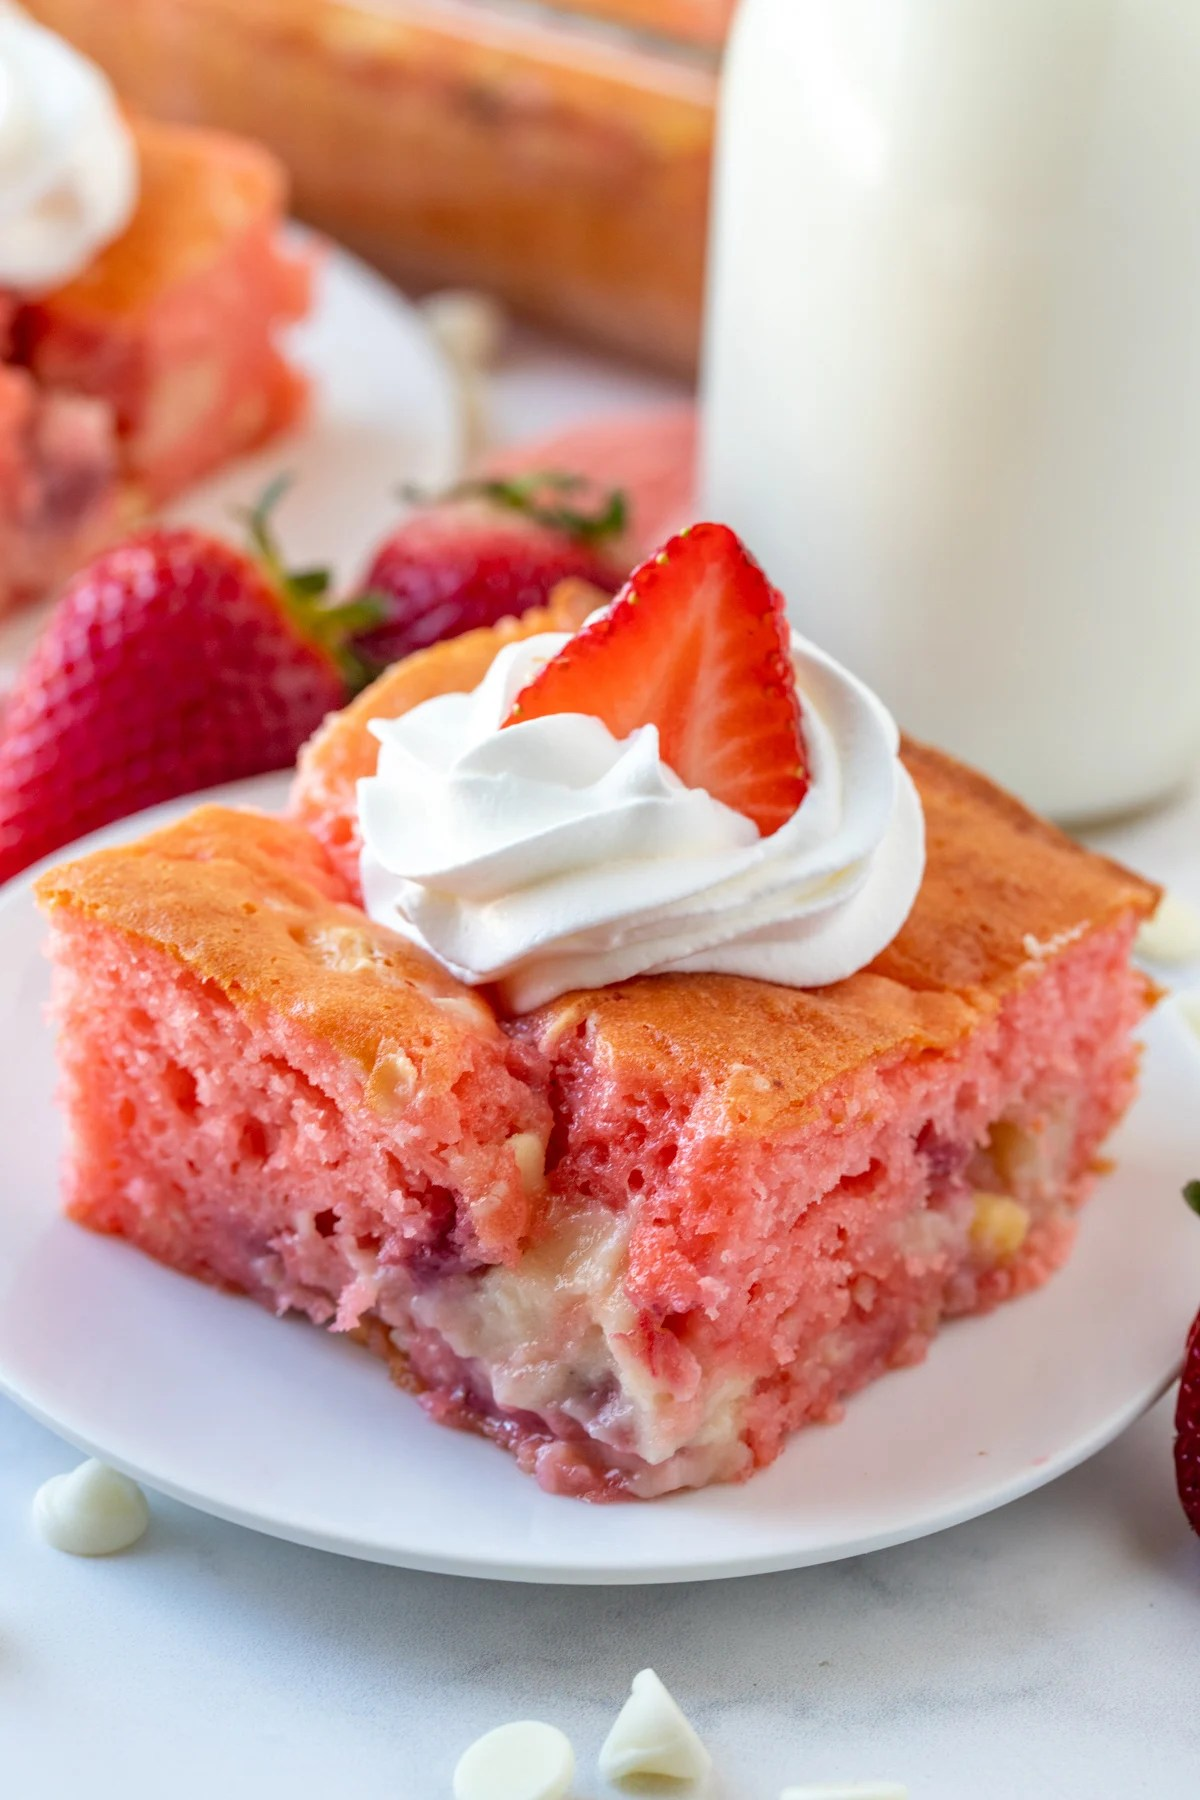 Slice of Strawberry Earthquake Cake on white plate topped with whipped cream and strawberry